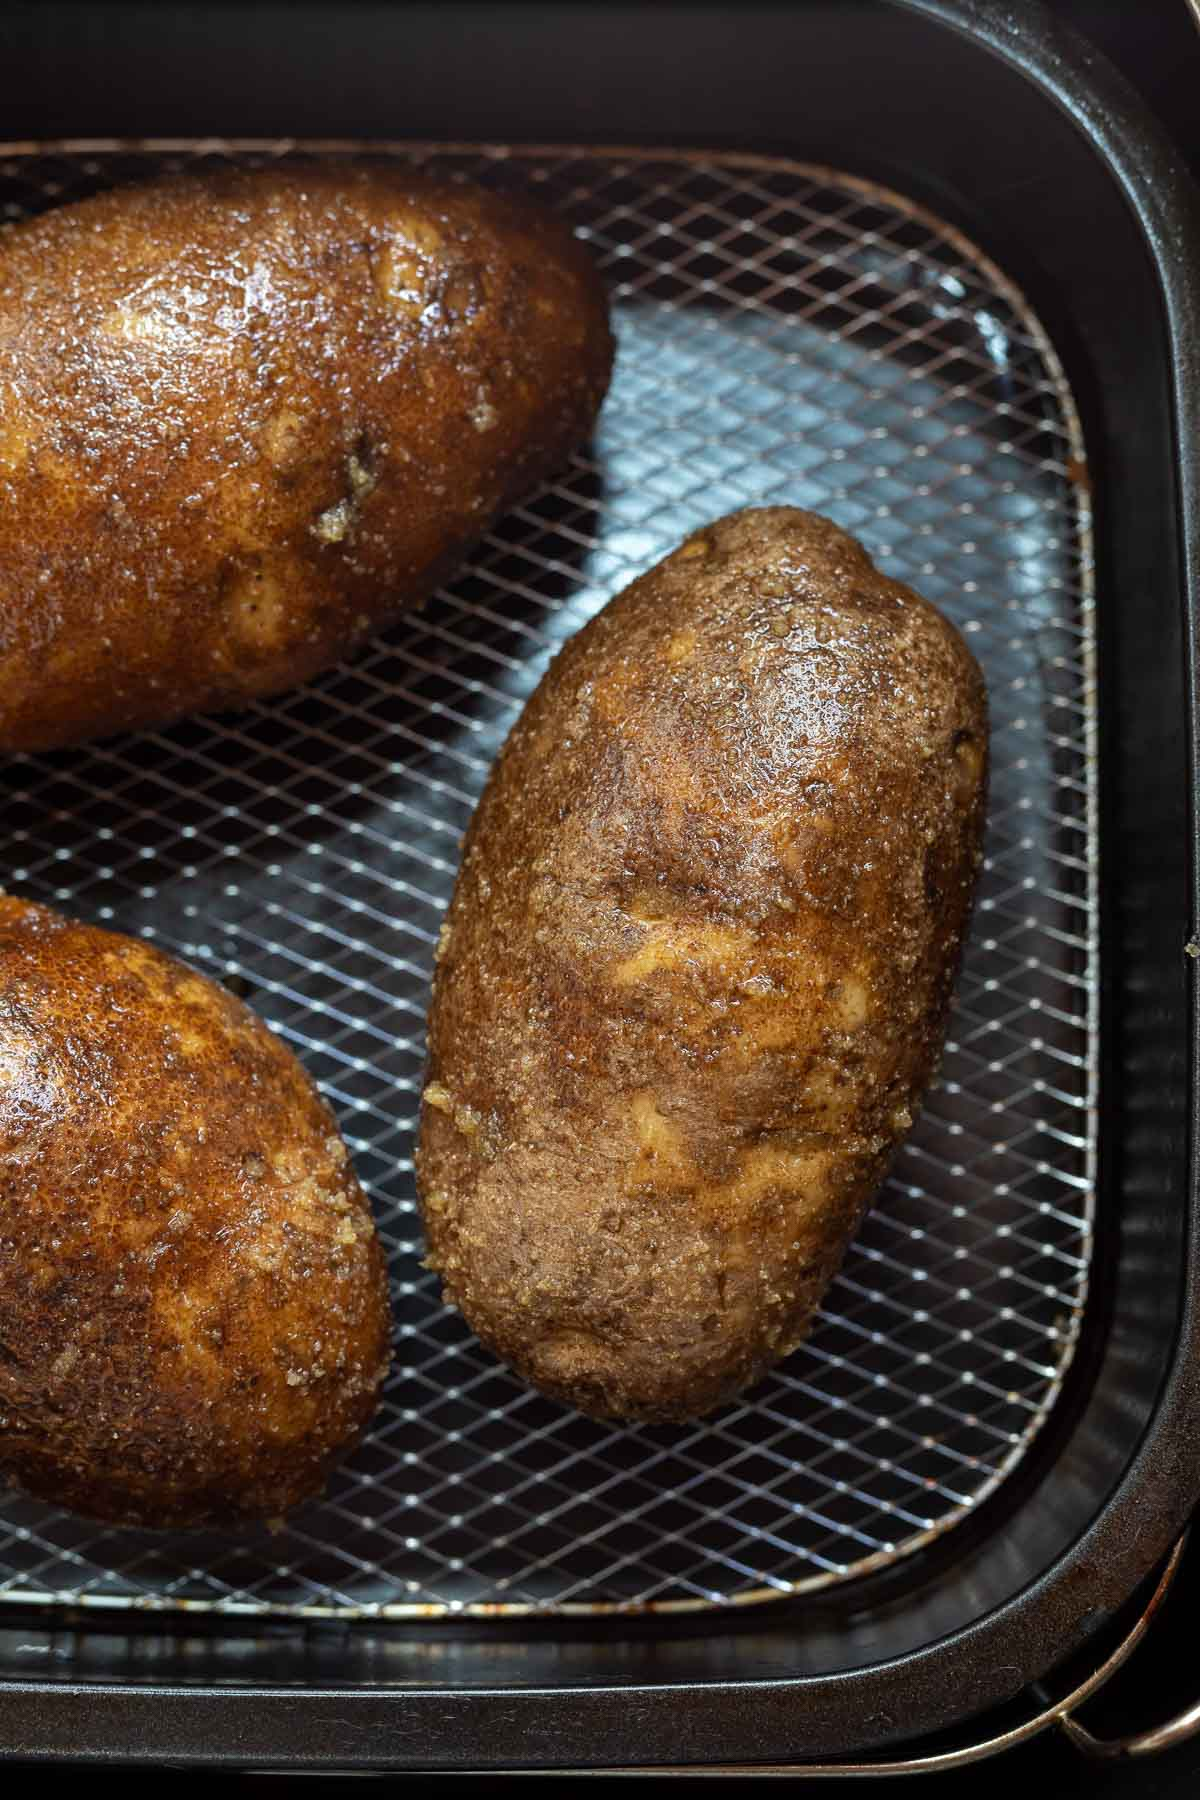 raw whole potatoes in air fryer basket